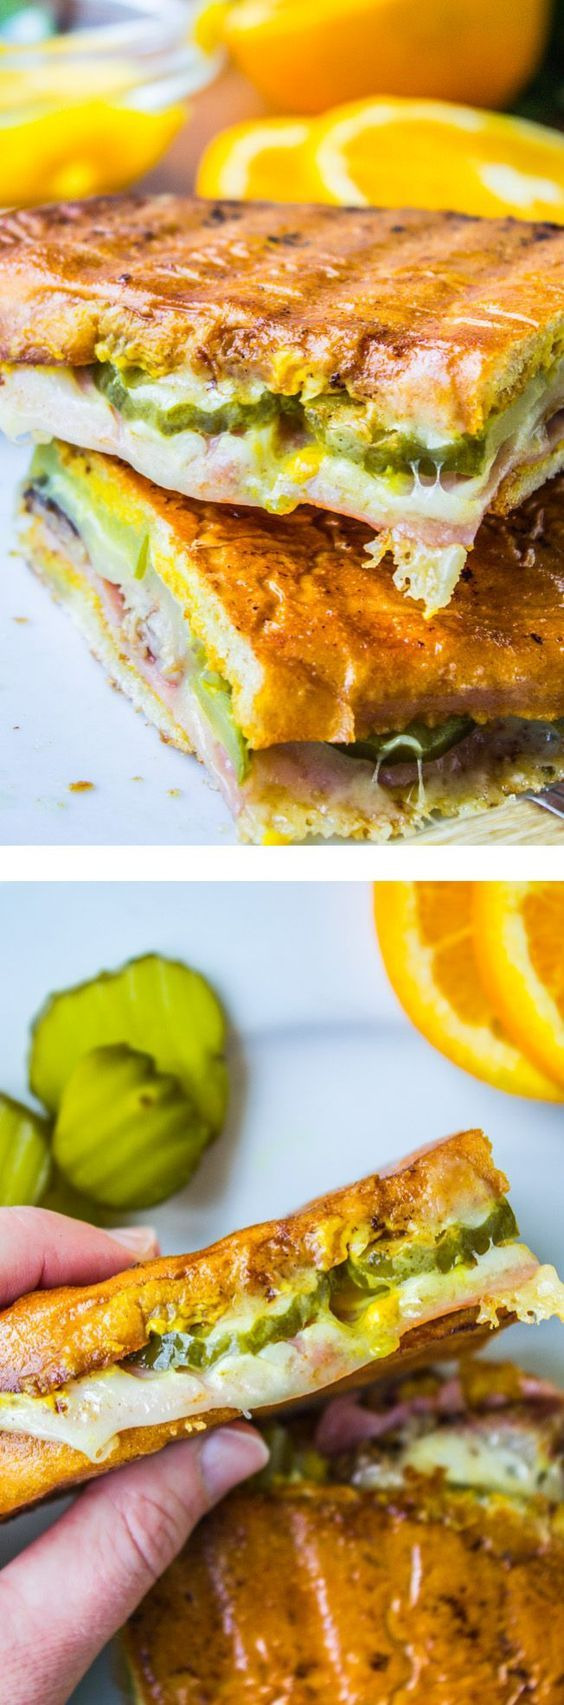 Cuban Sandwiches (Cubanos) from The Food Charlatan // The classic, filled with mojo pork, swiss, pickles, and tons of mustard! (Cuban Sandwich Recipes)